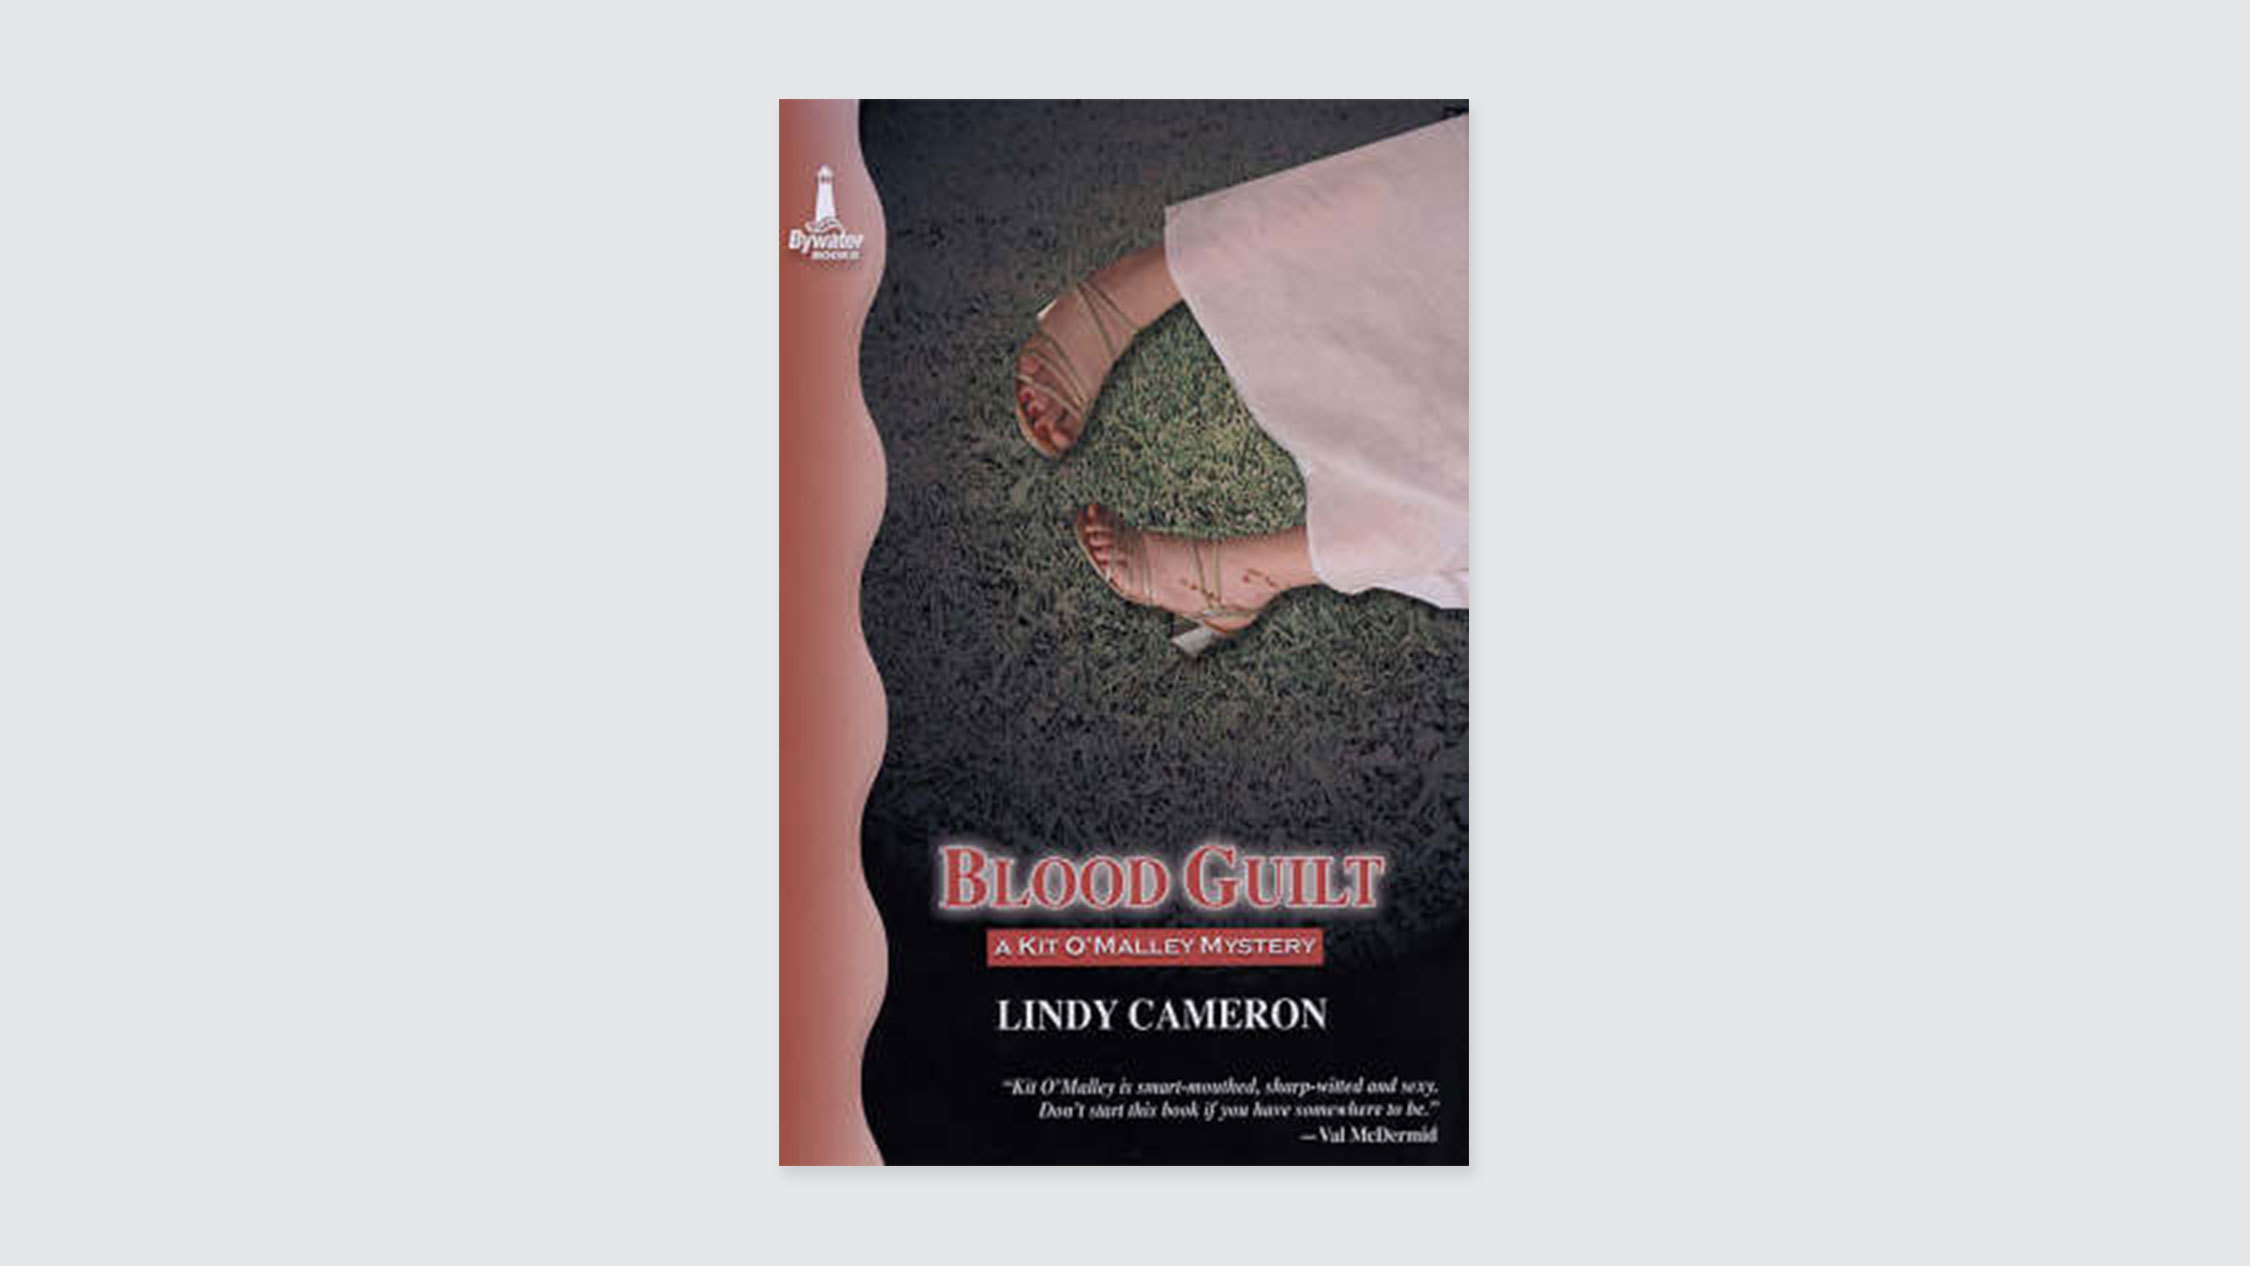 Blood Guilt by Lindy Cameron